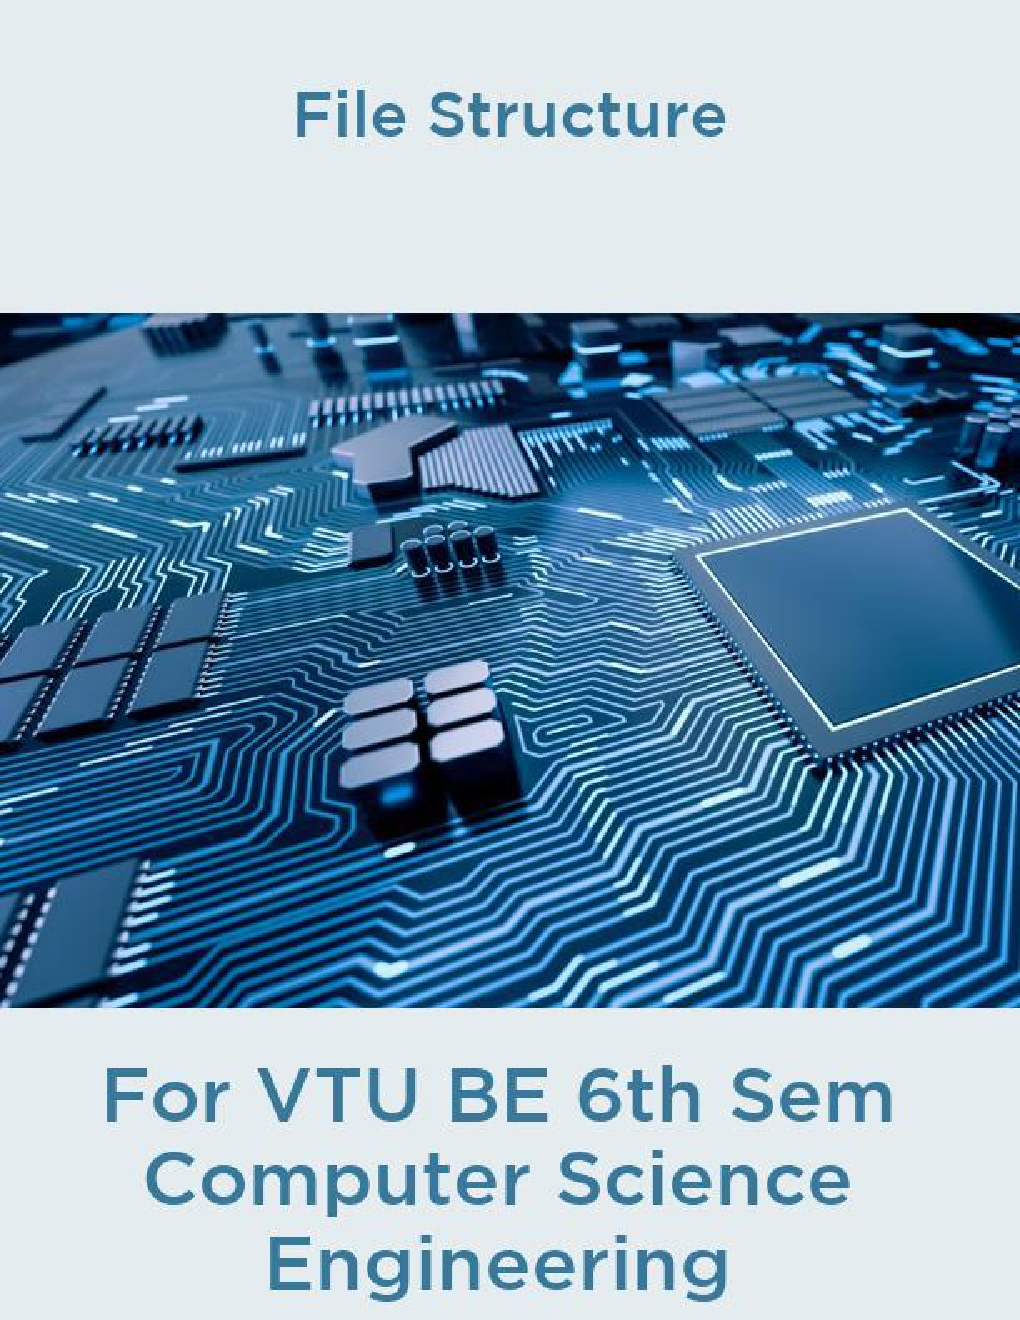 File Structure For VTU BE 6th Sem Computer Science Engineering - Page 1